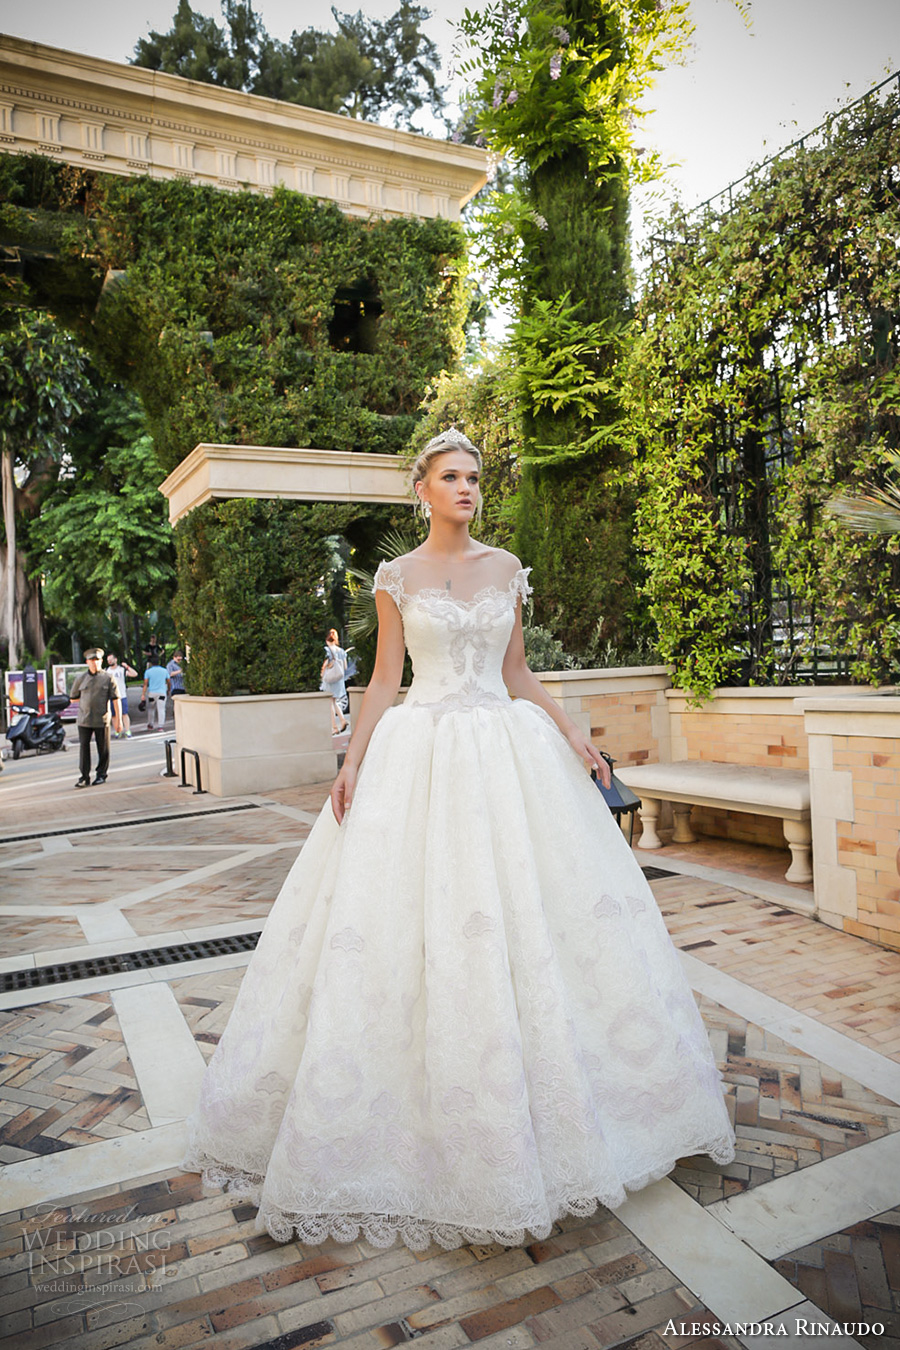 alessandra rinaudo 2017 bridal cap sleeves sweetheart neckline heavily embellished bodice princess ball gown wedding dress lace back chapel train (35) mv